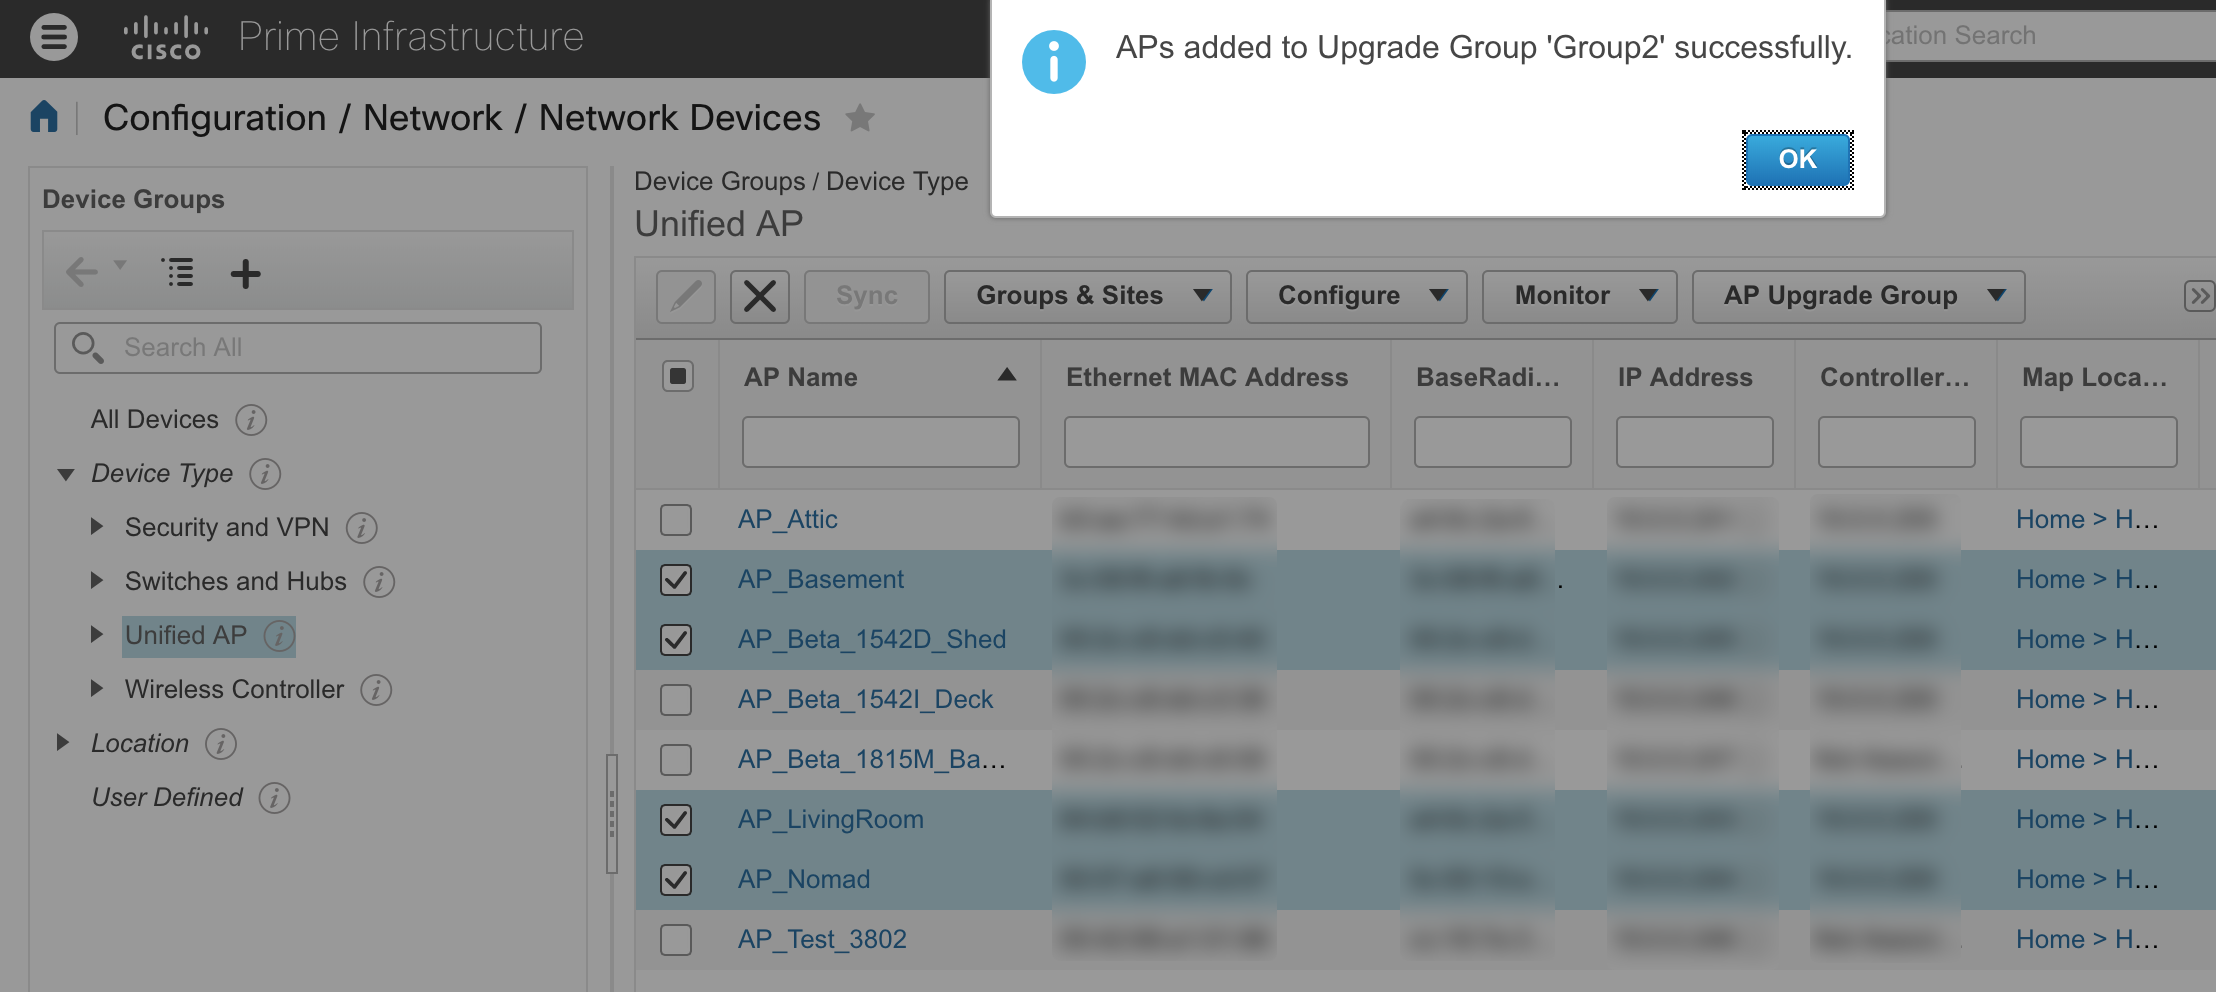 Rolling AP Upgrades with Cisco Prime Infrastructure 3 3